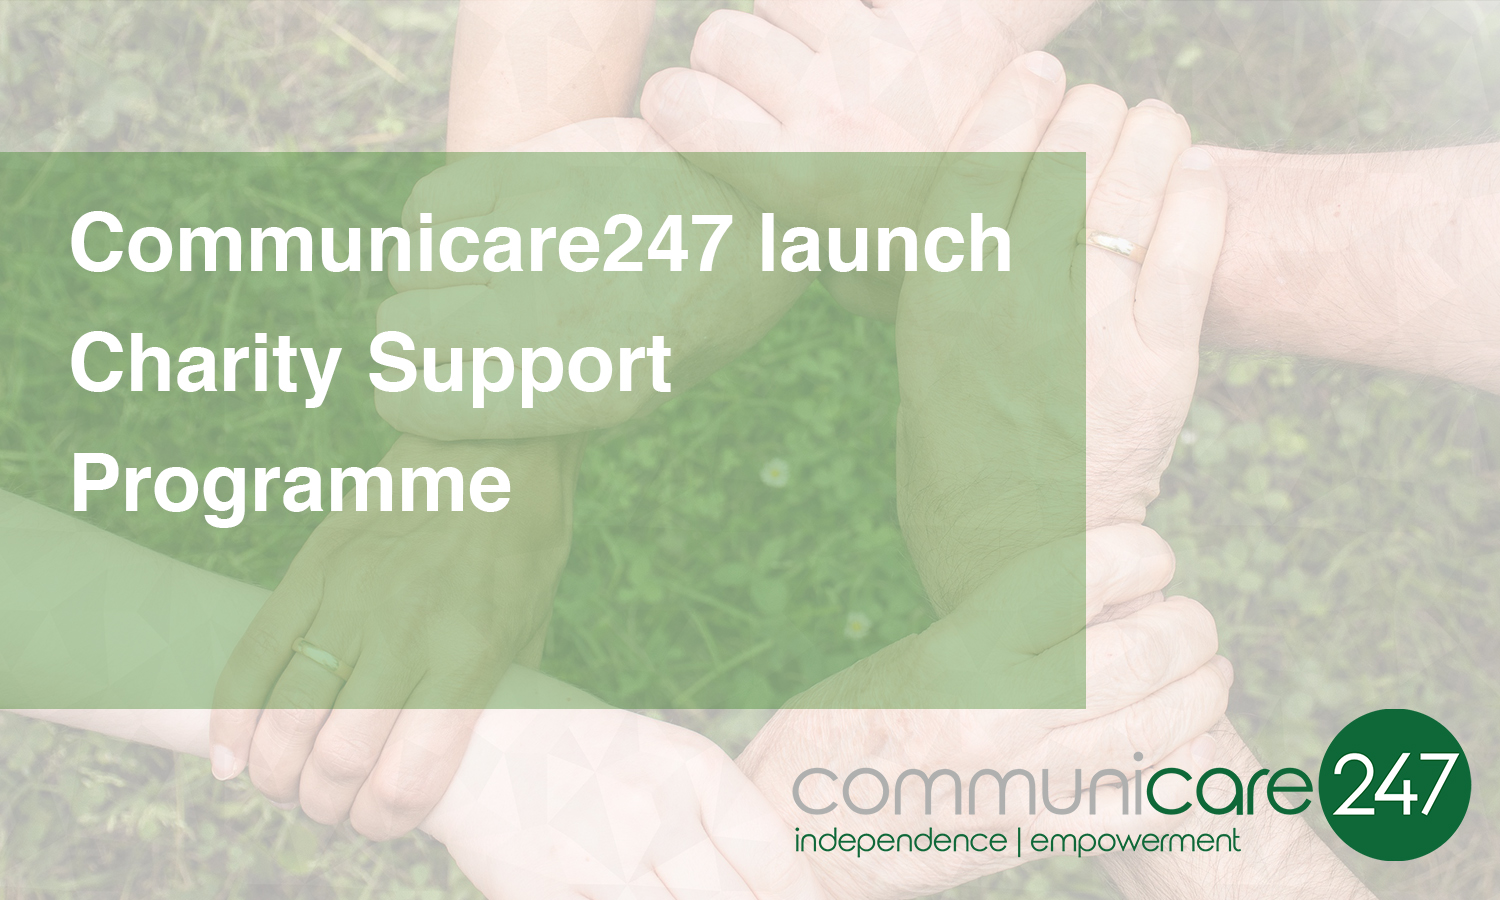 Communicare247 launch Charity Support Programme